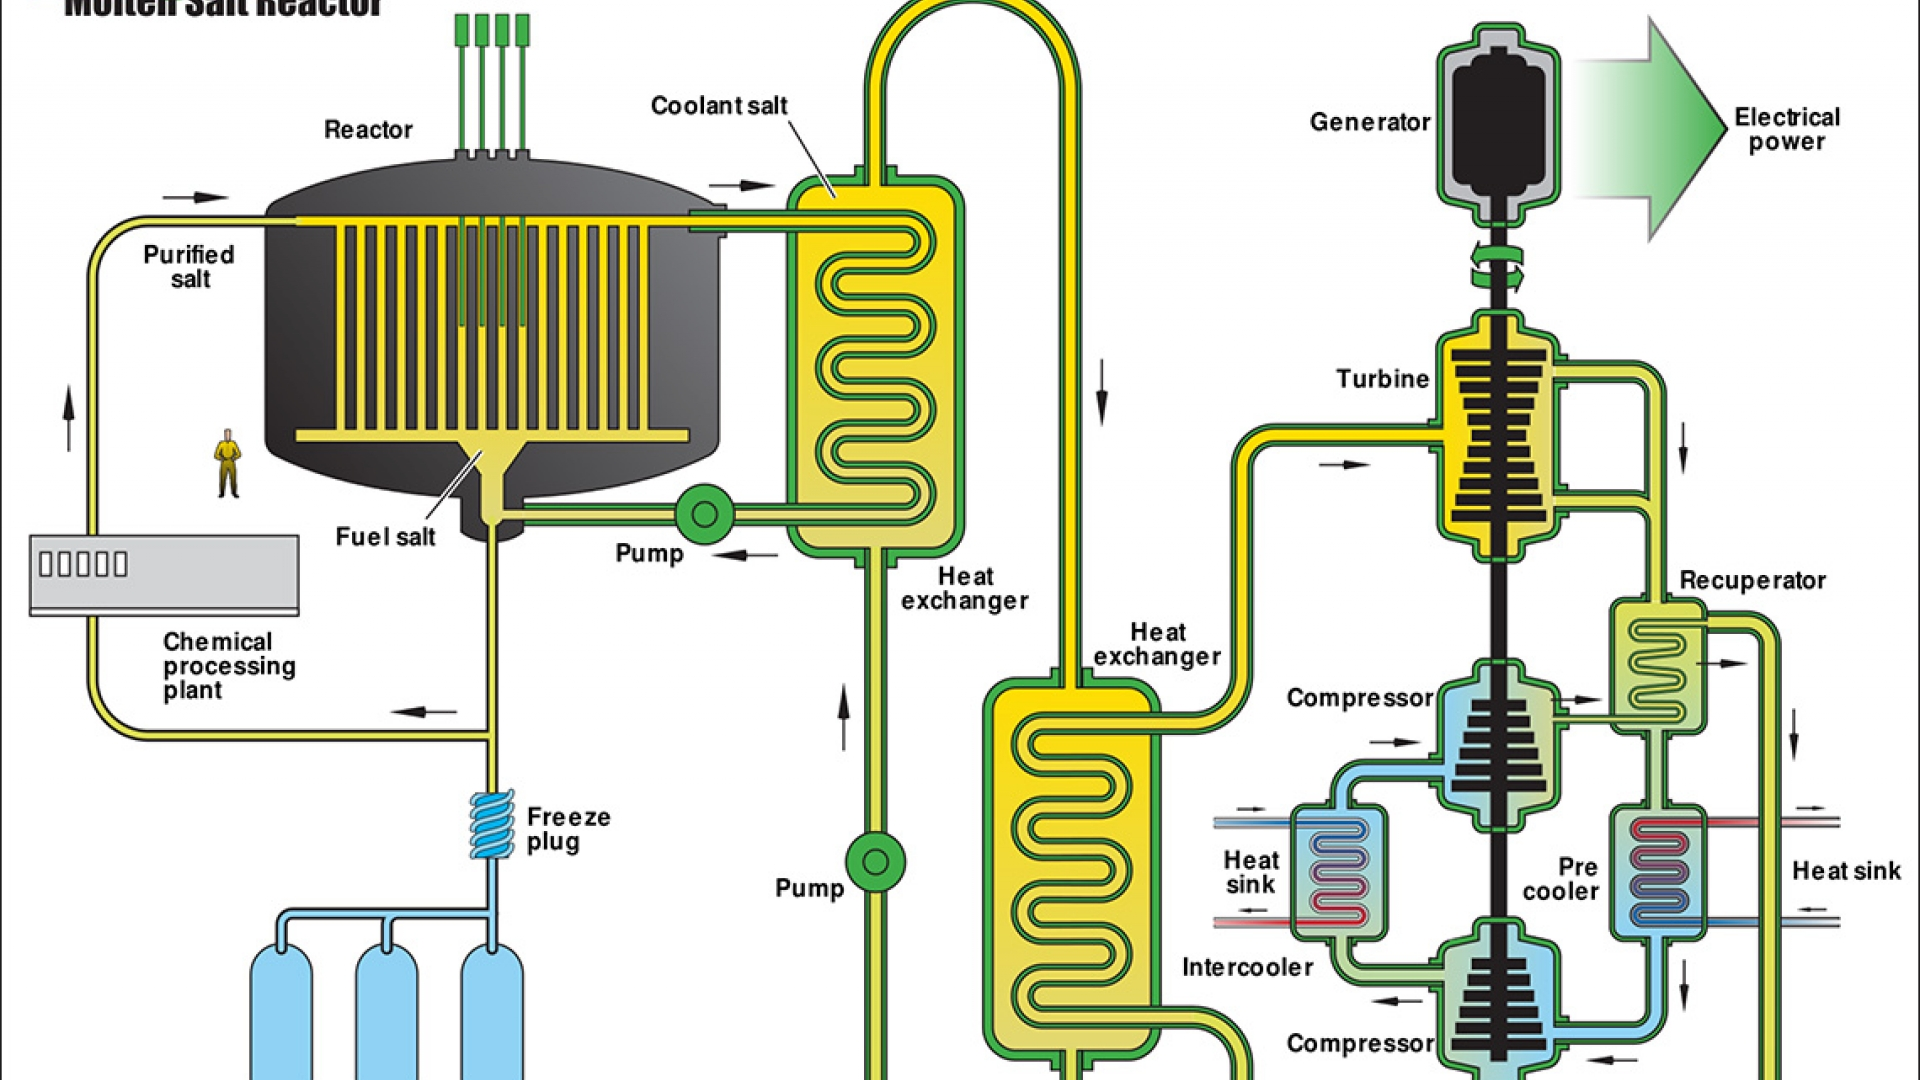 Molten salt reactors iaea to establish new platform for conceptual schema of a molten salt reactor image us department of energy nuclear energy research advisory committee pooptronica Choice Image